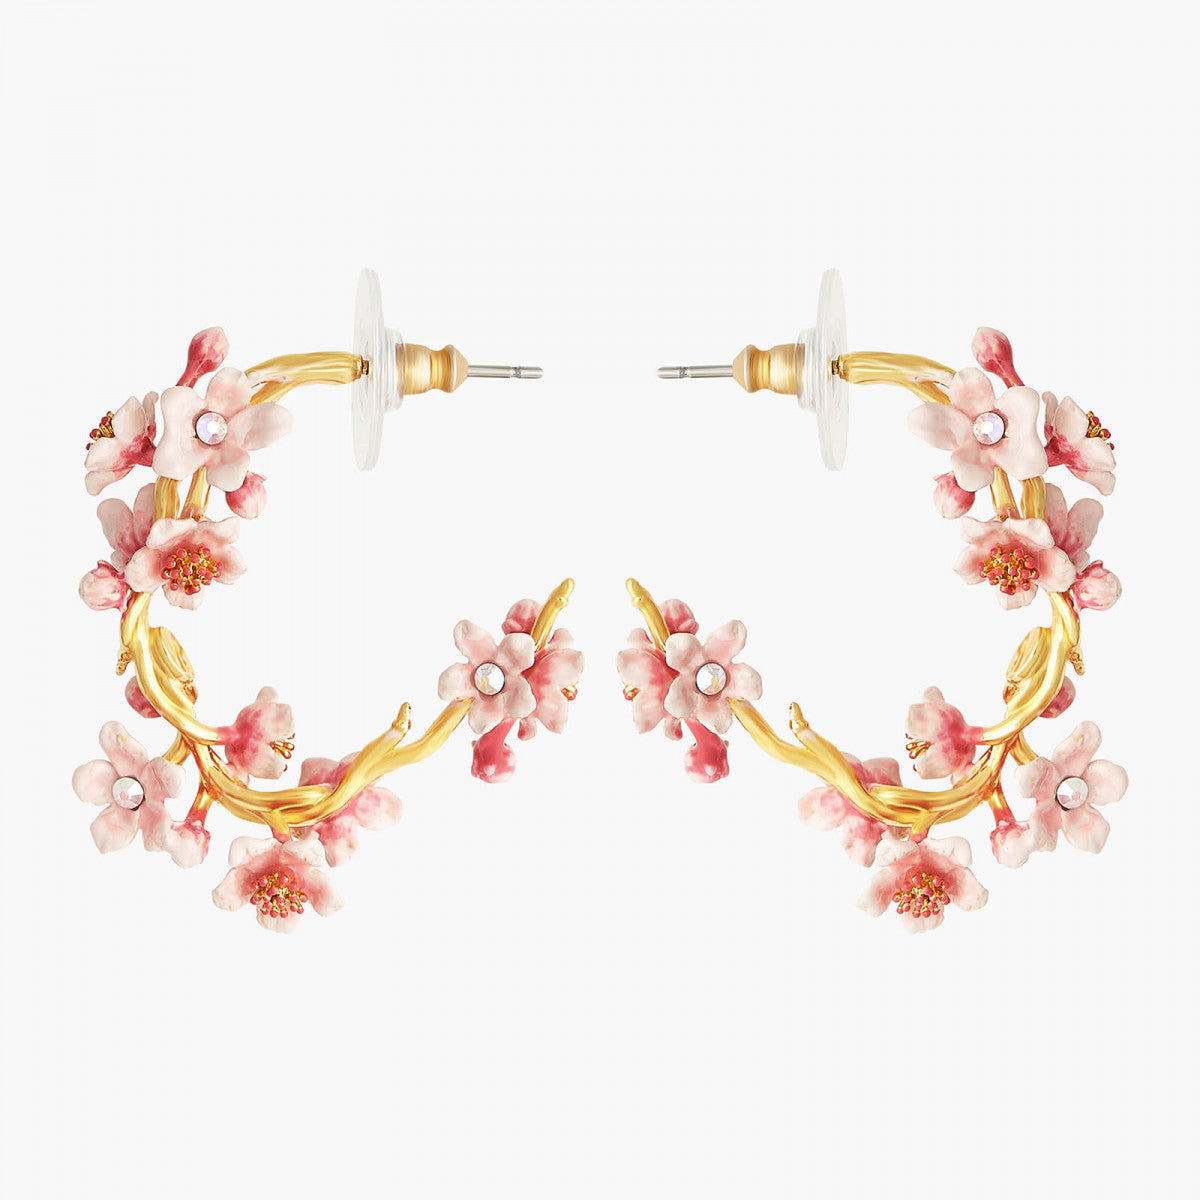 Japanese Cherry Blossom and golden branch hoop earrings